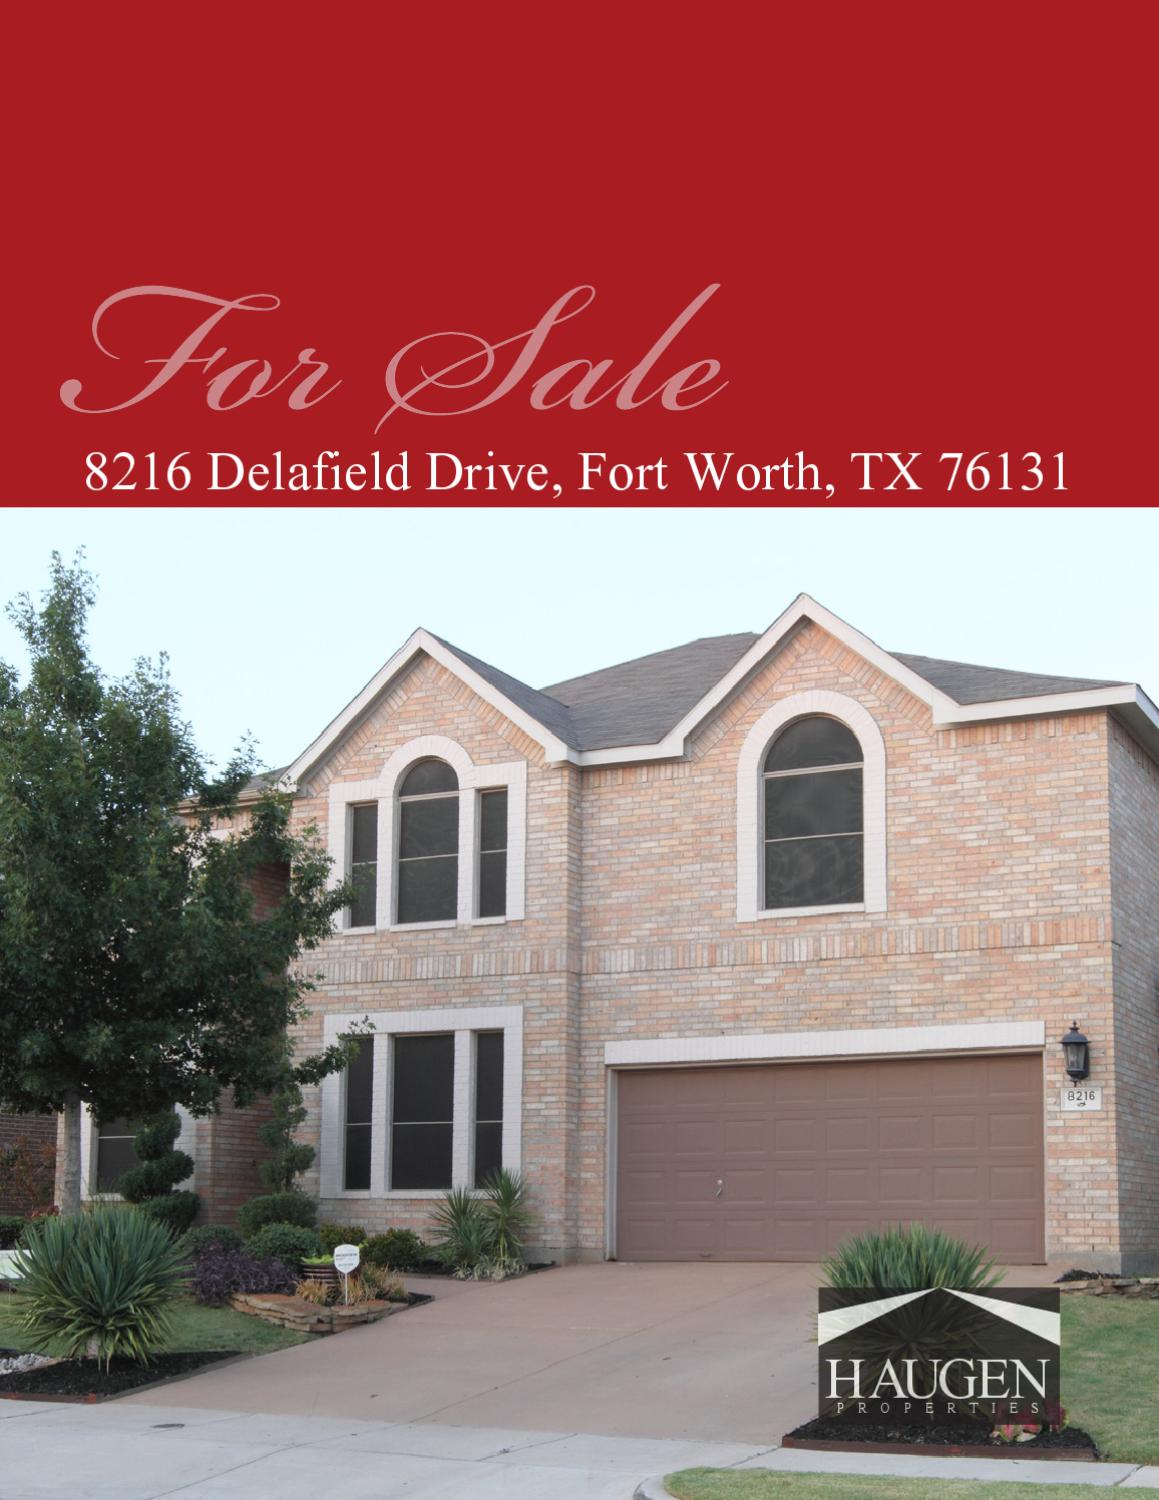 8216 Delafield Drive Fort Worth Texas 76131 By Jason